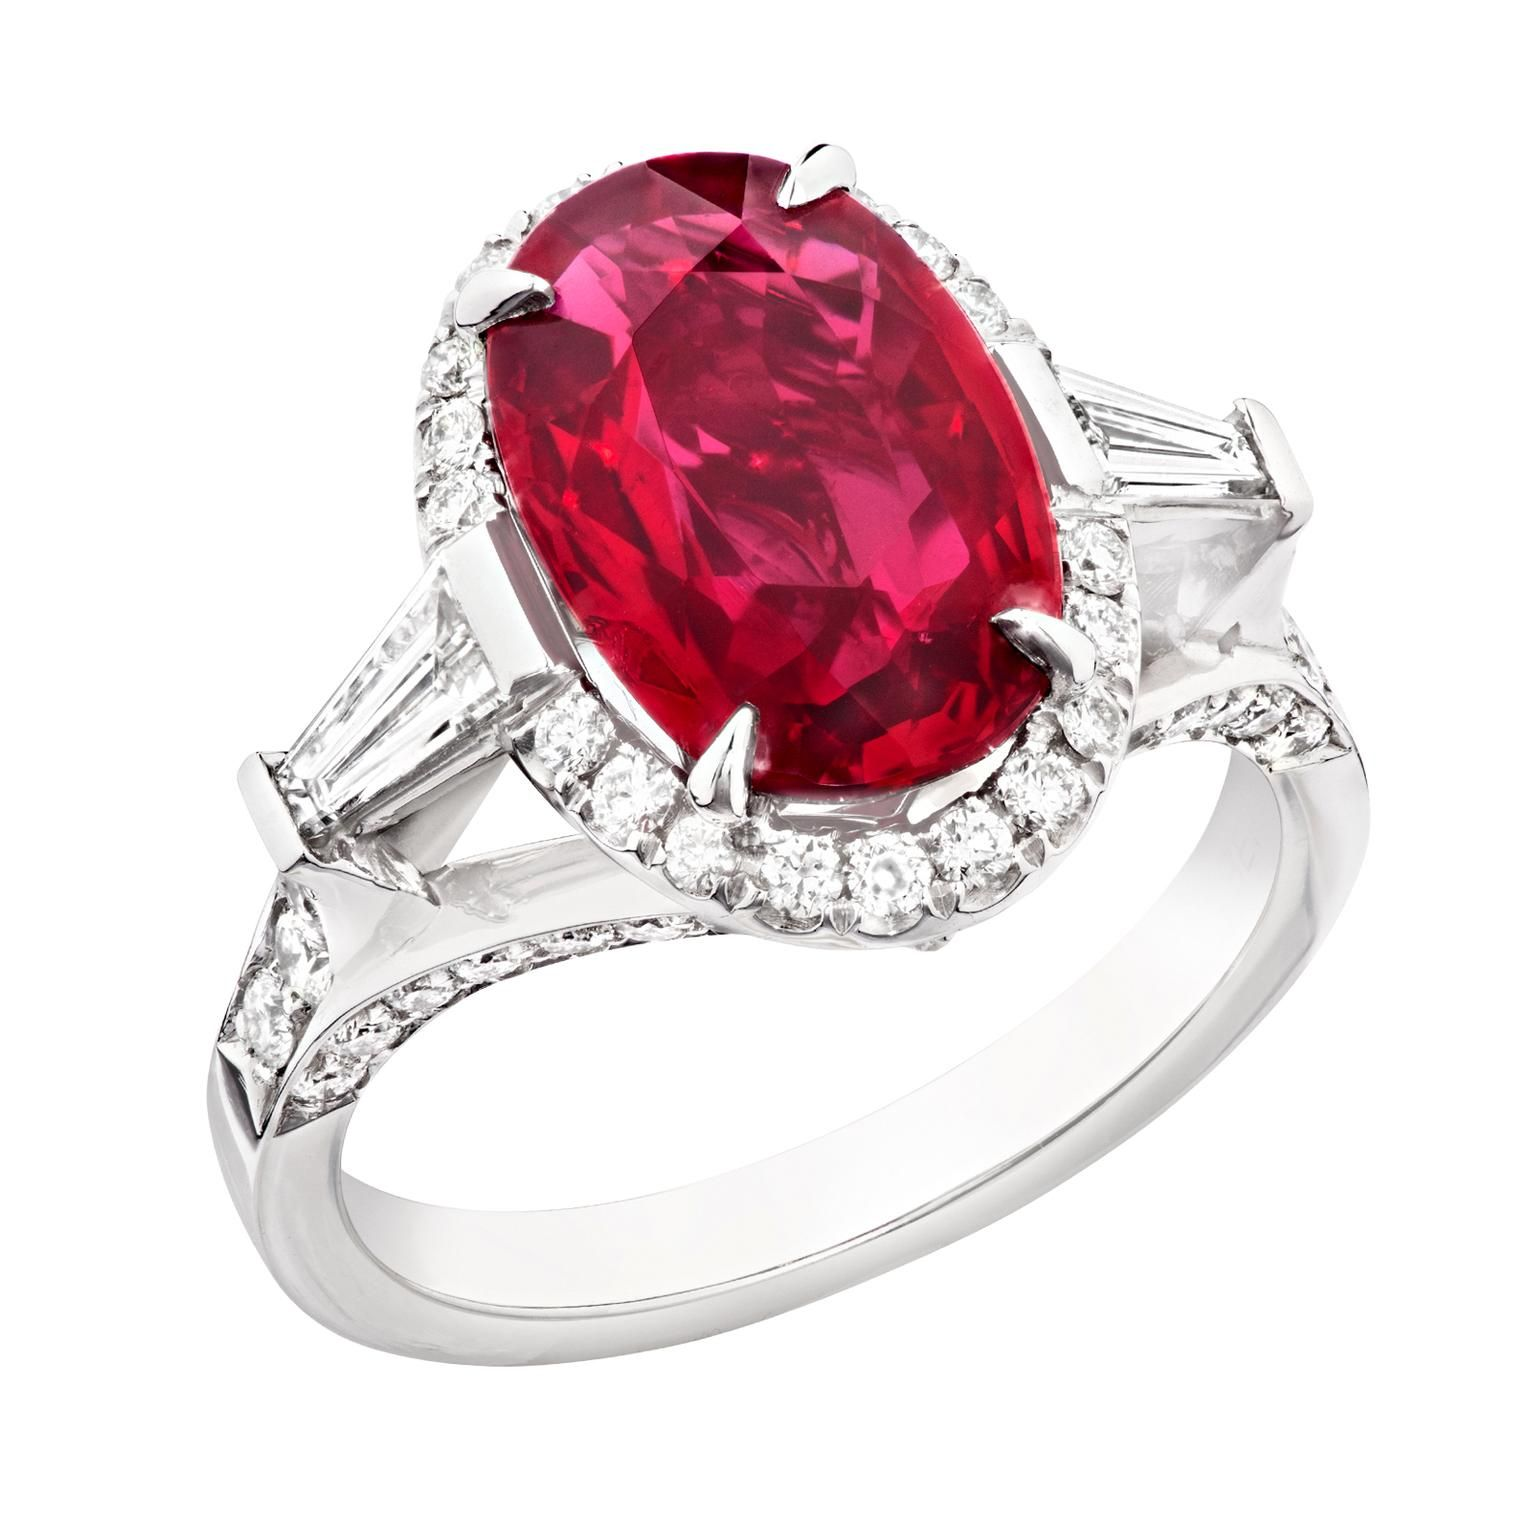 Fabergé Oval Cut 4 02 Carat Ruby Engagement Ring Set In Platinum With White Diamonds